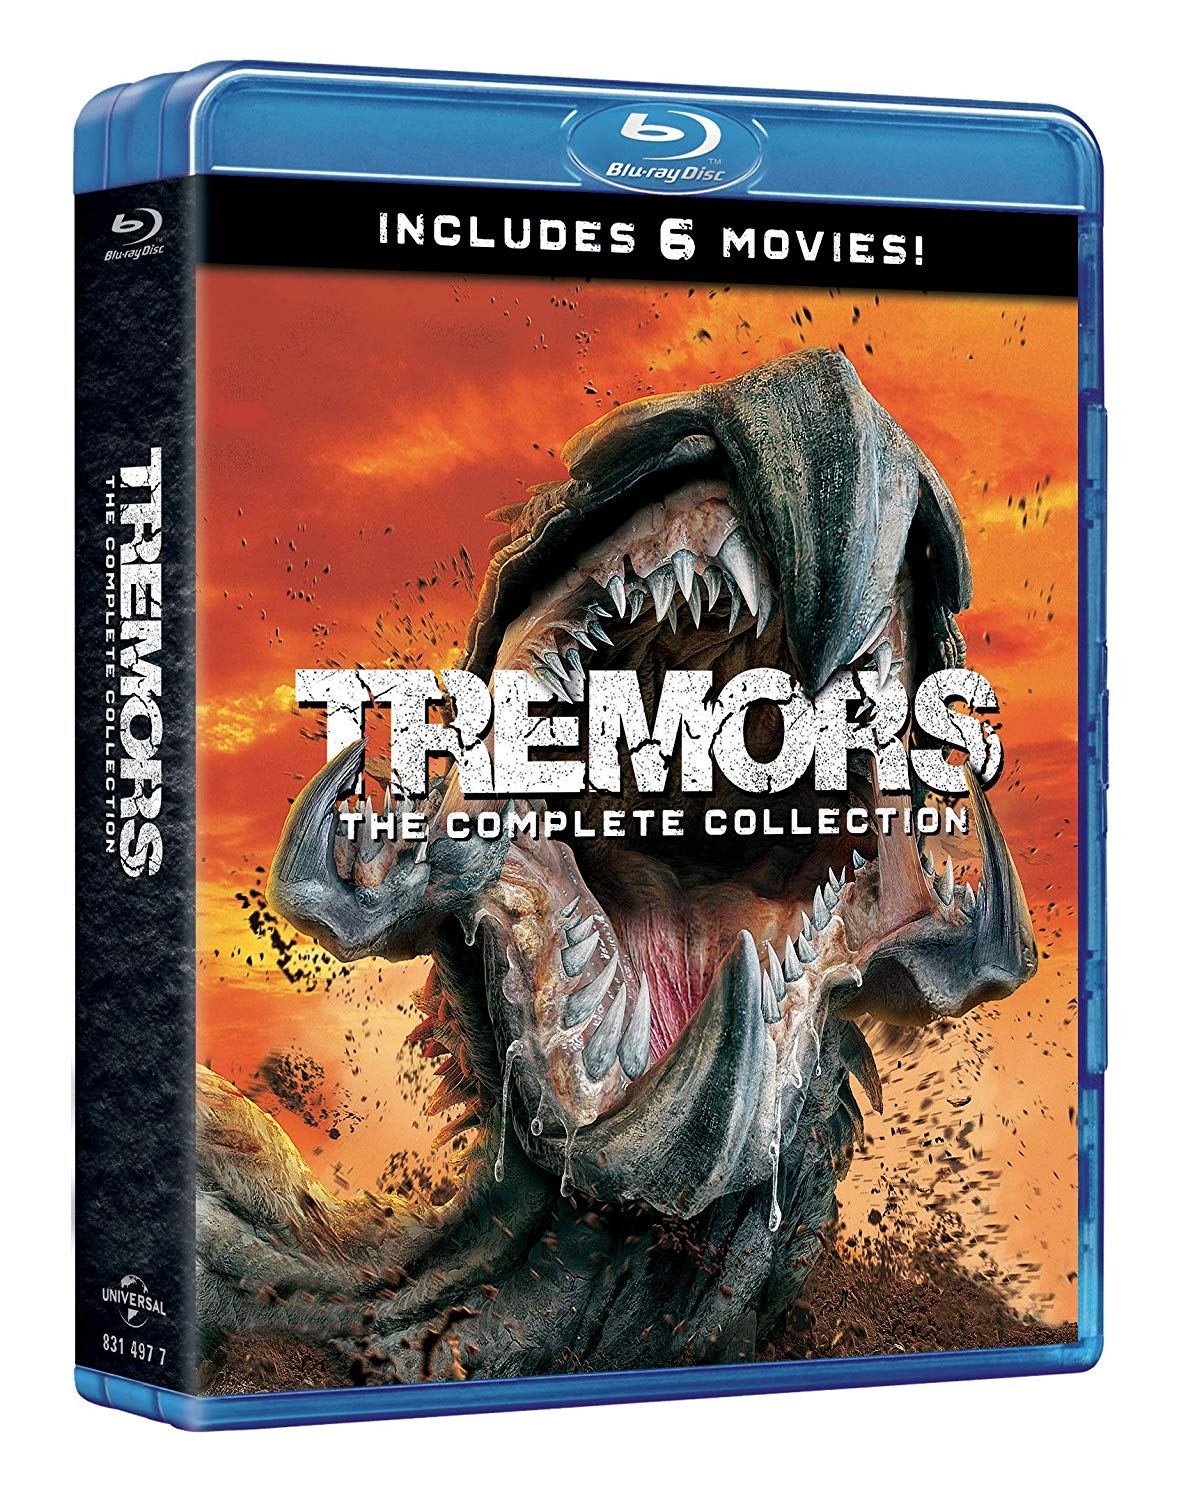 COF.TREMORS 1-6 COLLECTION (6 BLU-RAY)